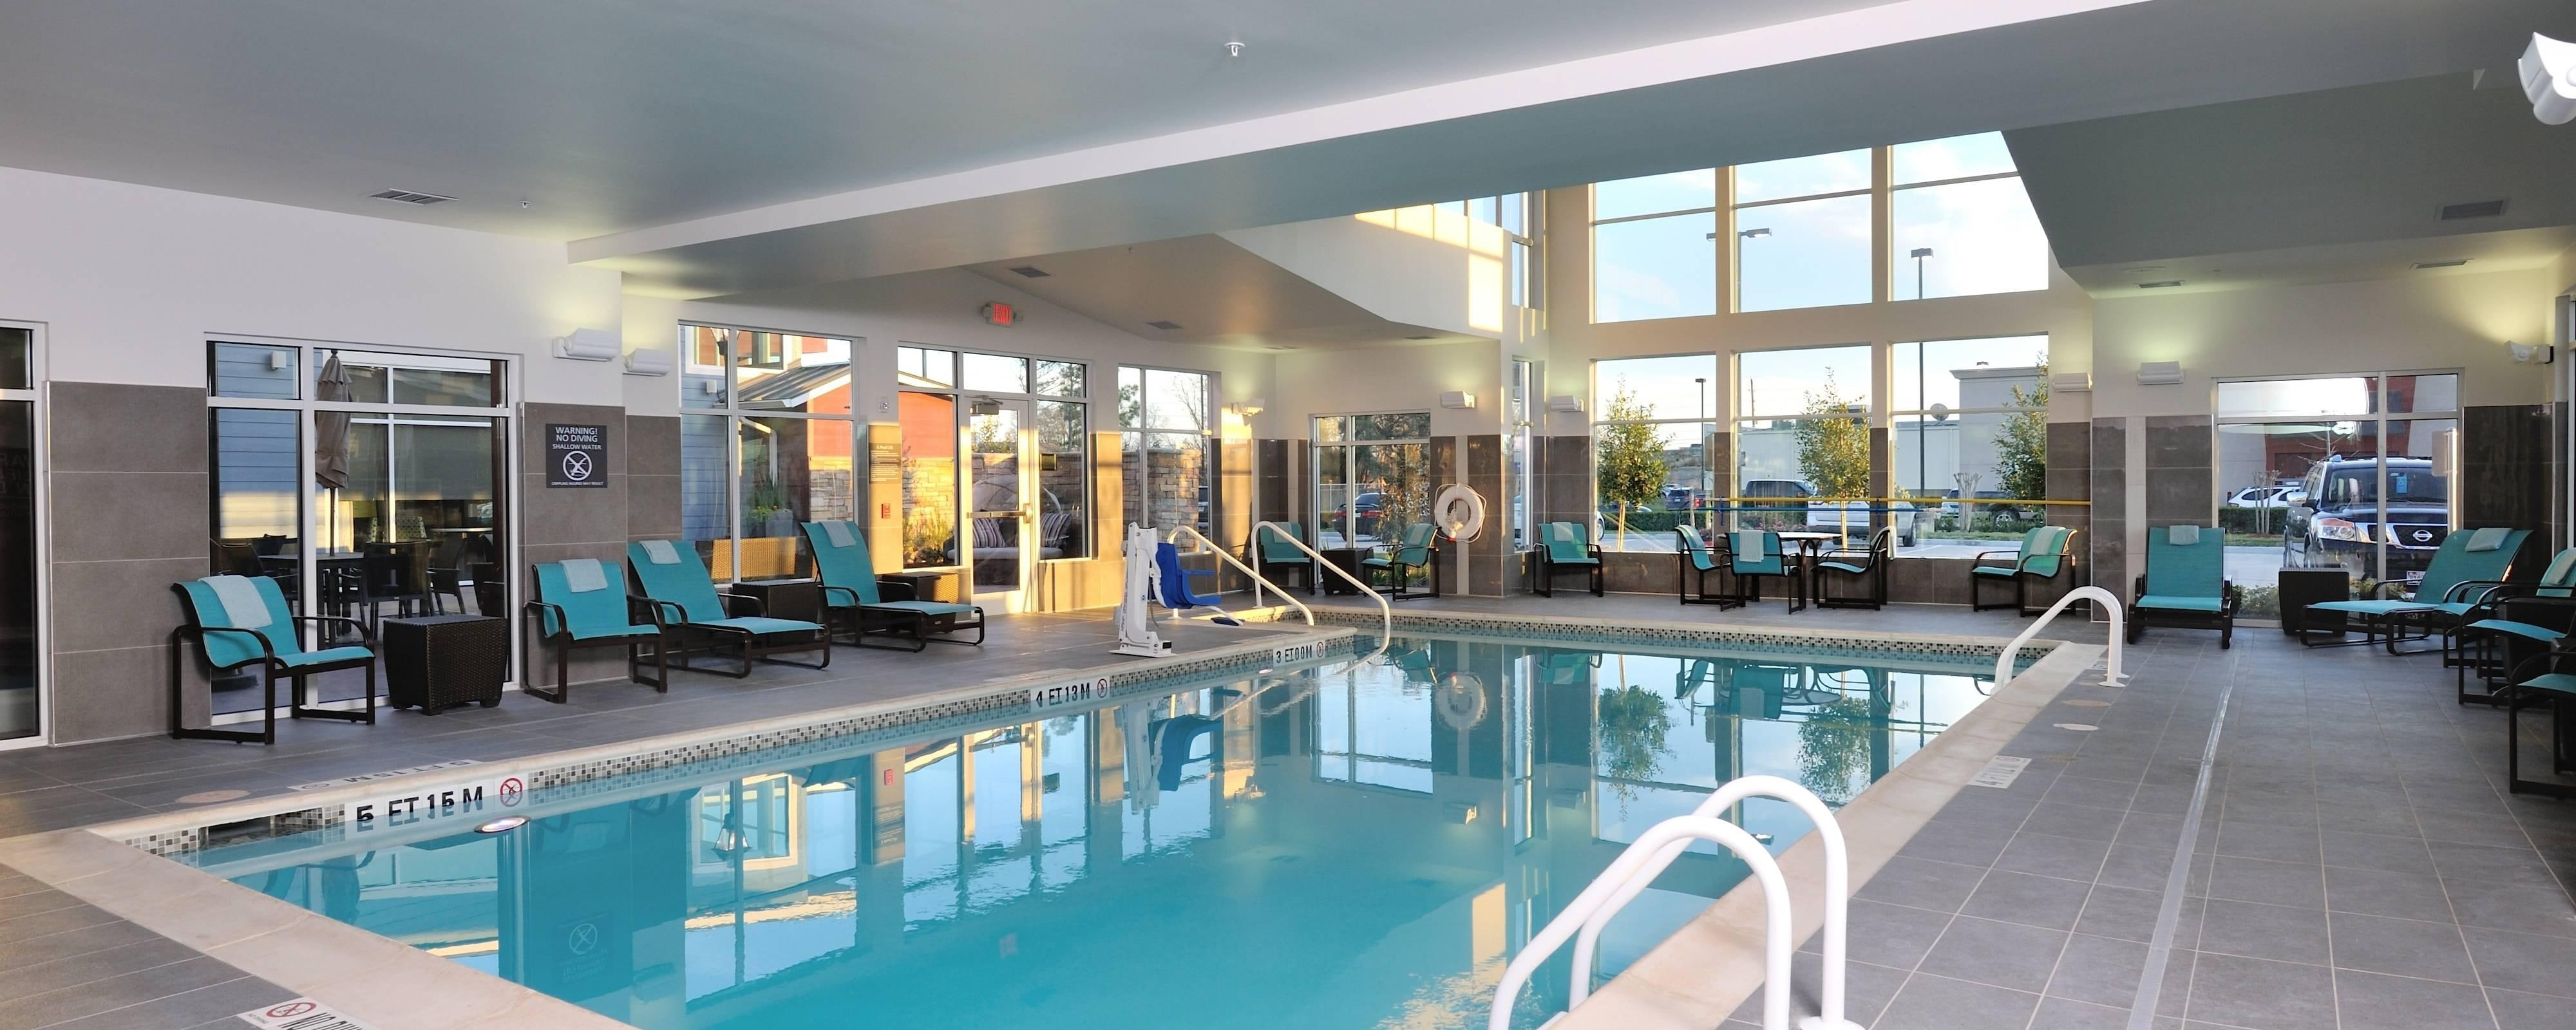 Houston Hotels with Indoor Pool